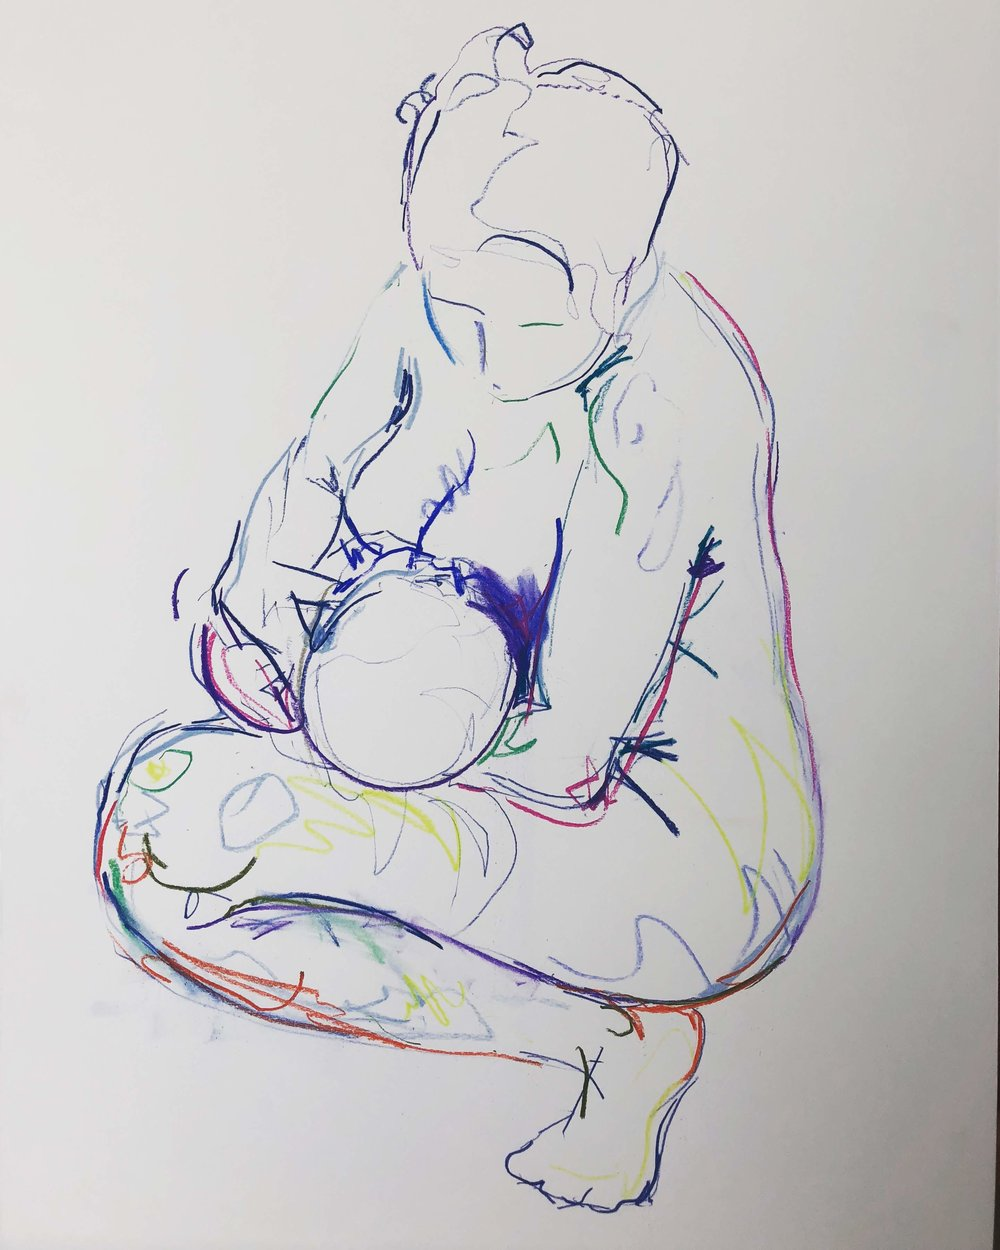 Crouching mother feeding newborn 1, pastel on paper, framed 69x53cm £485